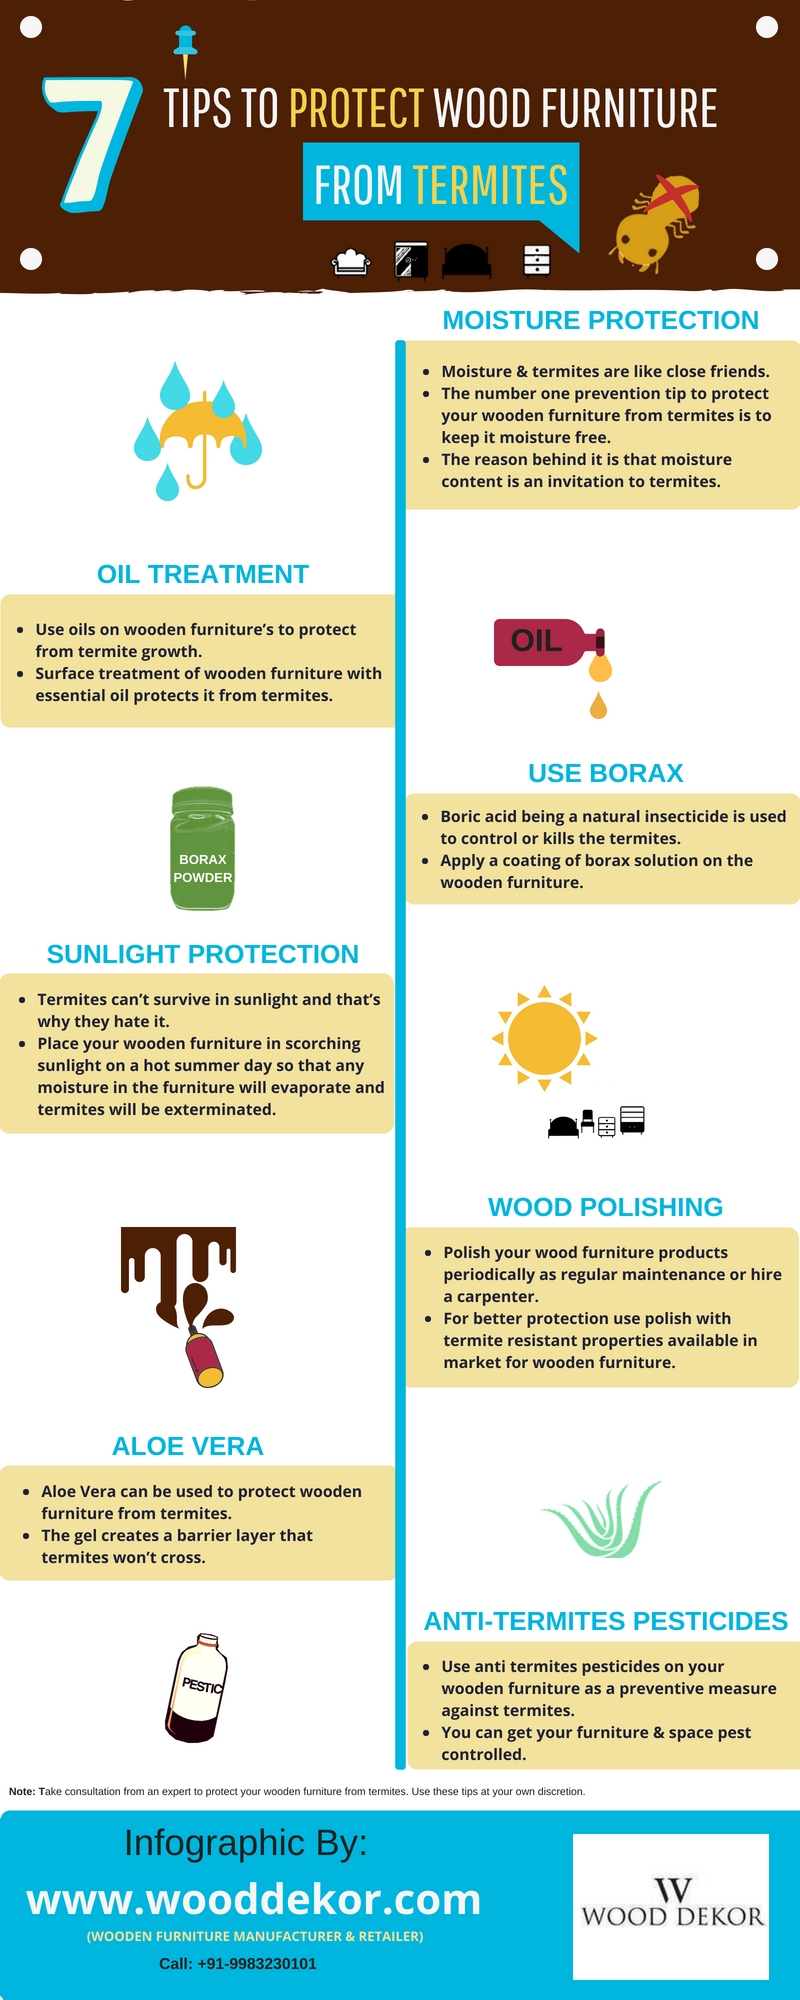 7-Tips-To-Prevent-Wooden-Furniture-From-Termites-Infographic-Wooddekor